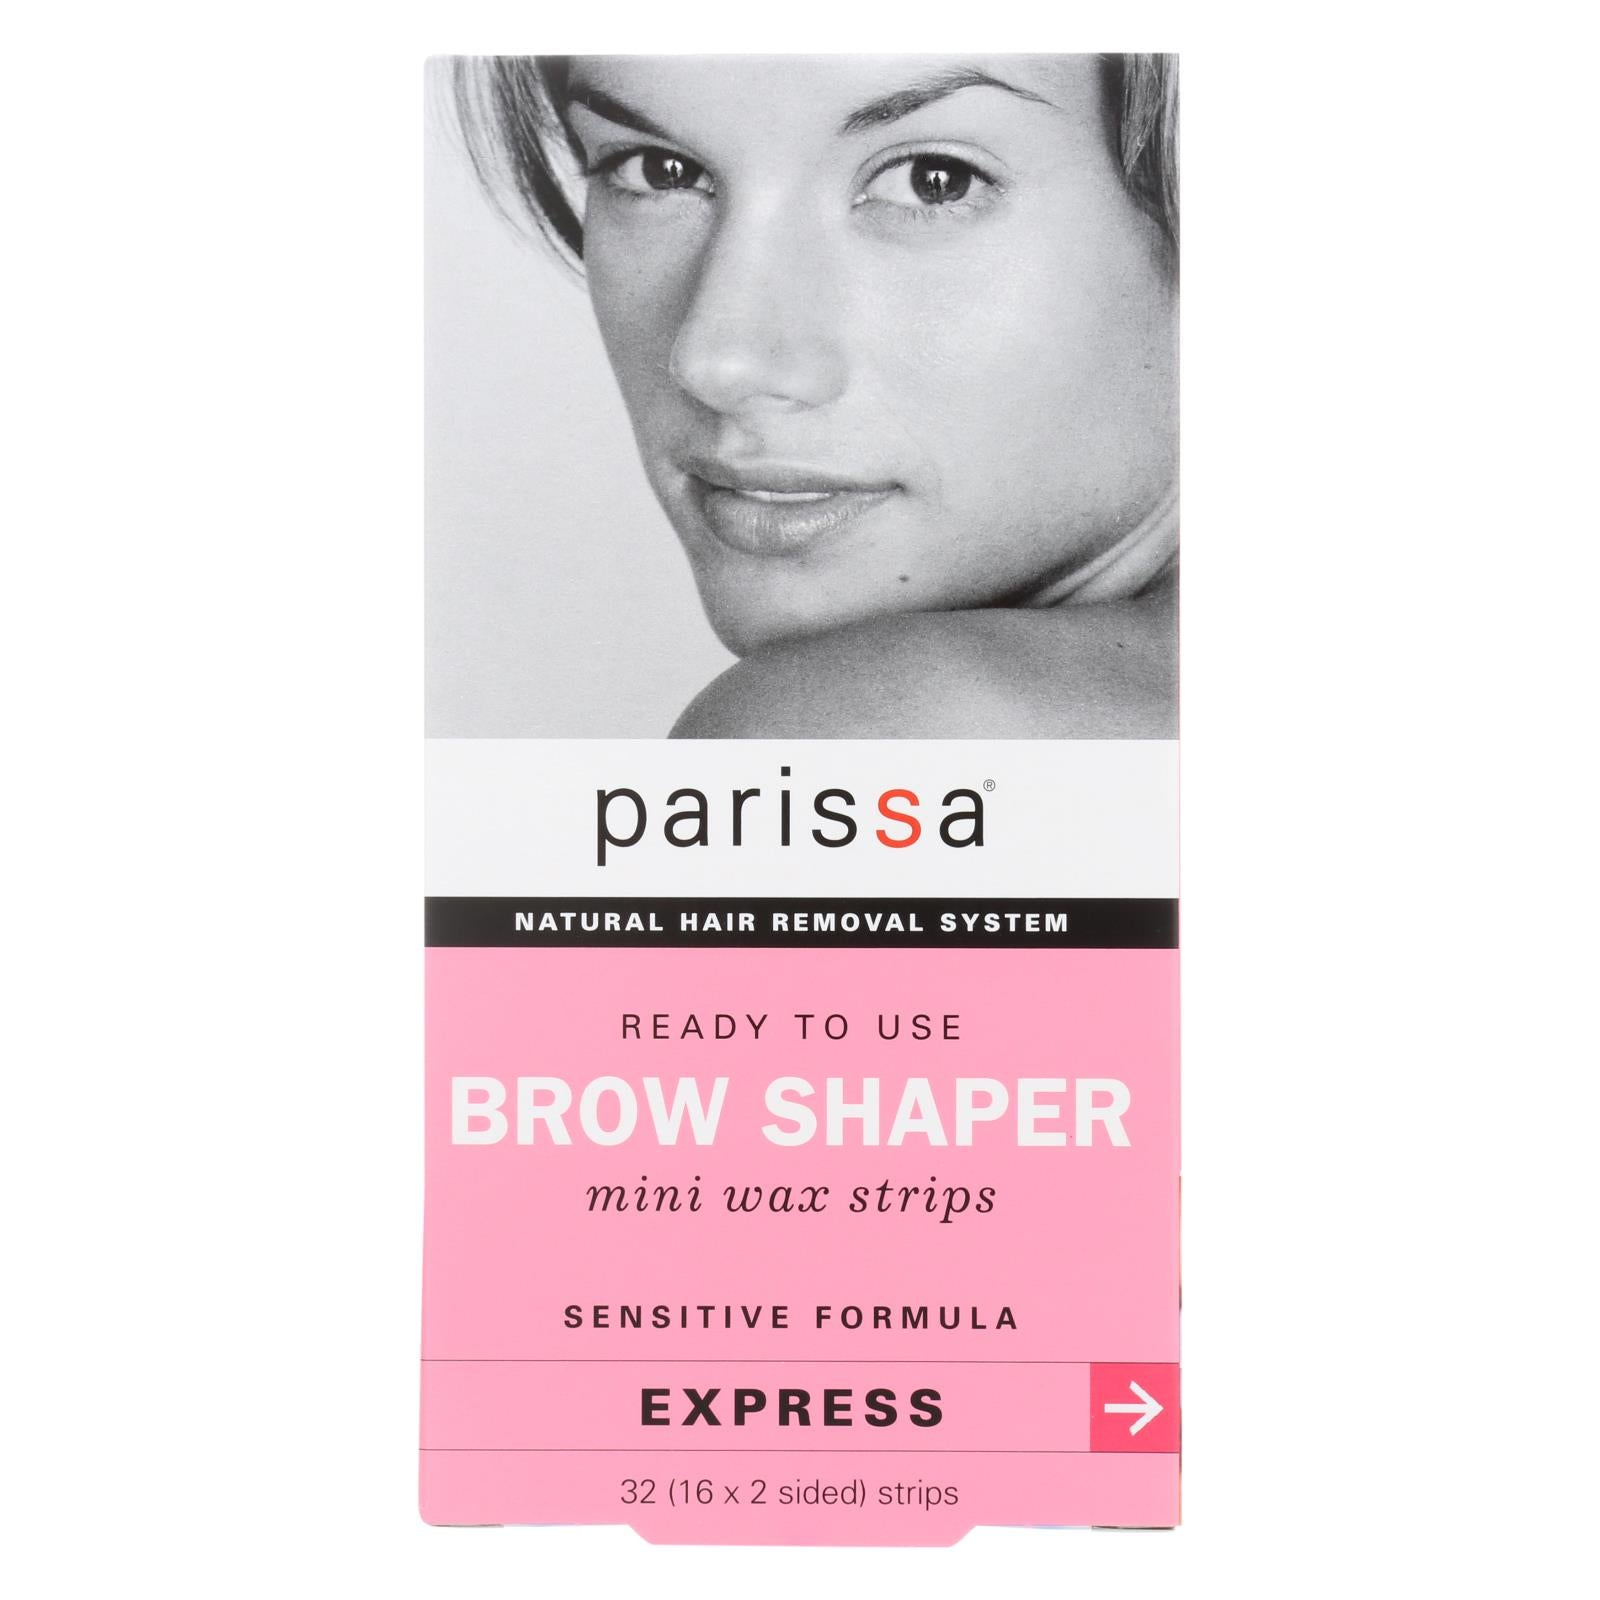 Parissa Natural Hair Removal System Brow Shaper - 32 Strips HG0935056